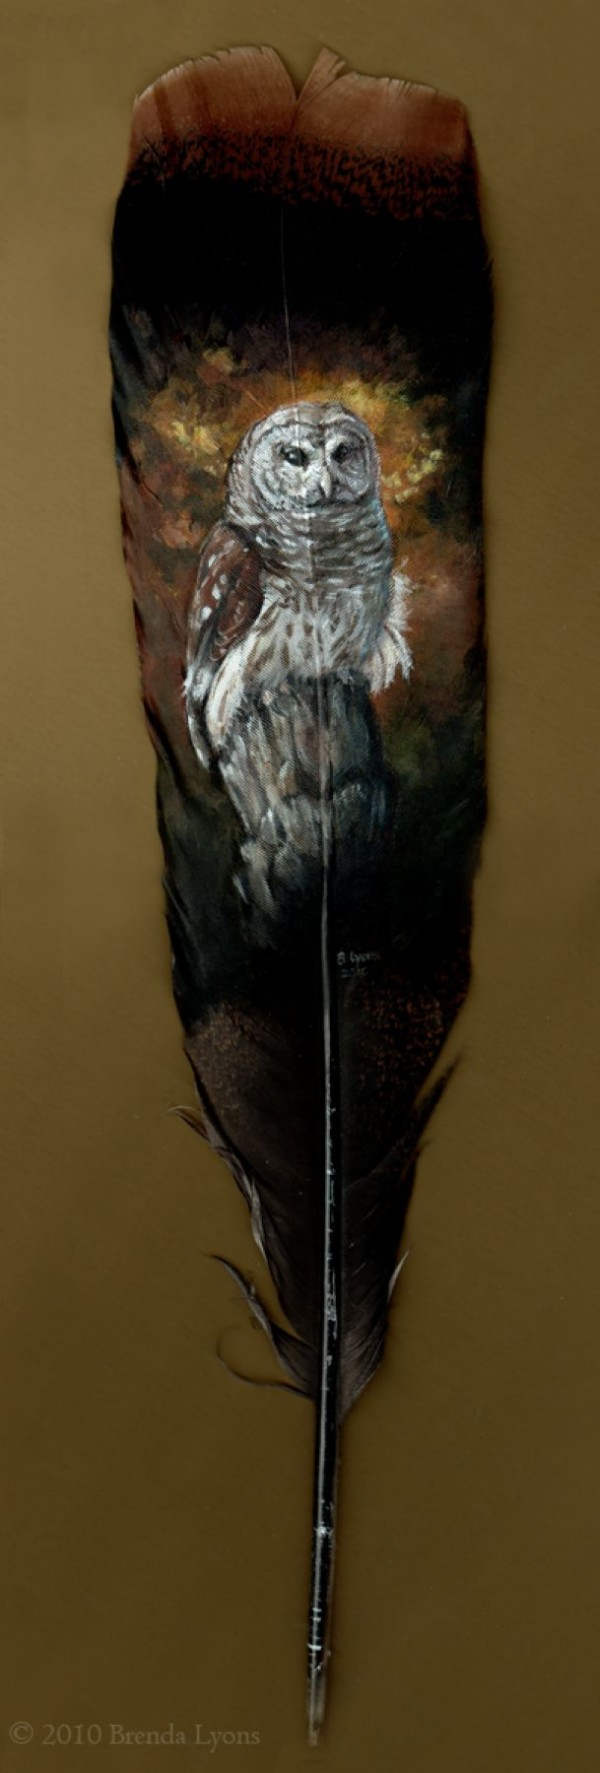 Emrys feather